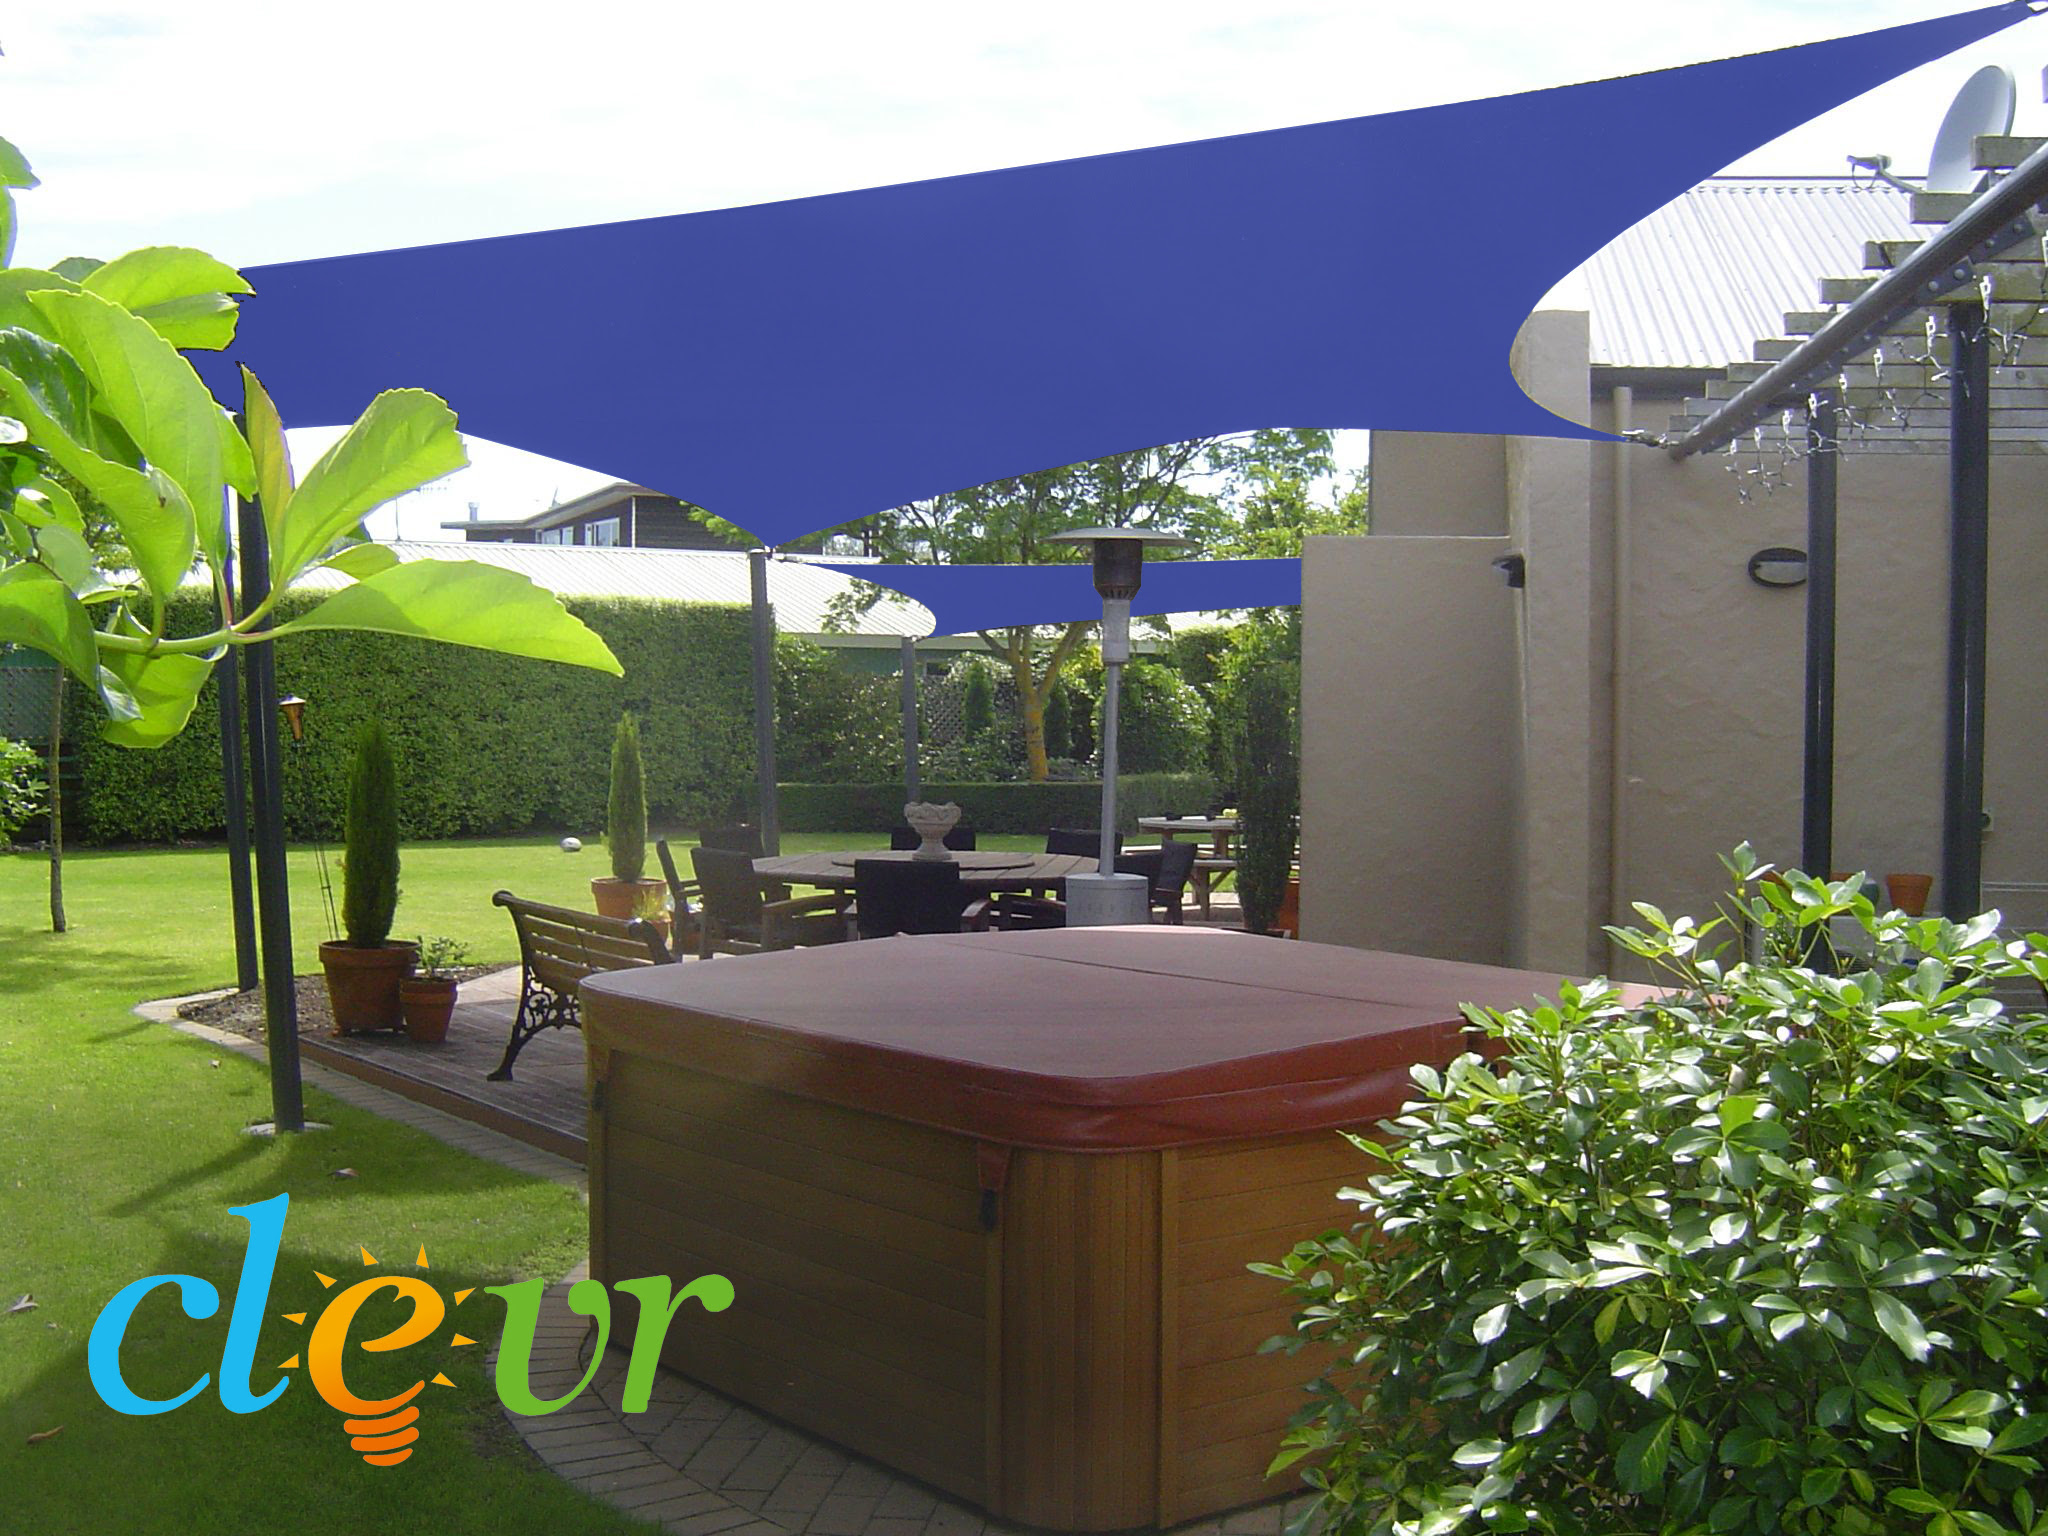 New Premium Clevr Sun Shade Canopy Sail 12' / 18' Square ...